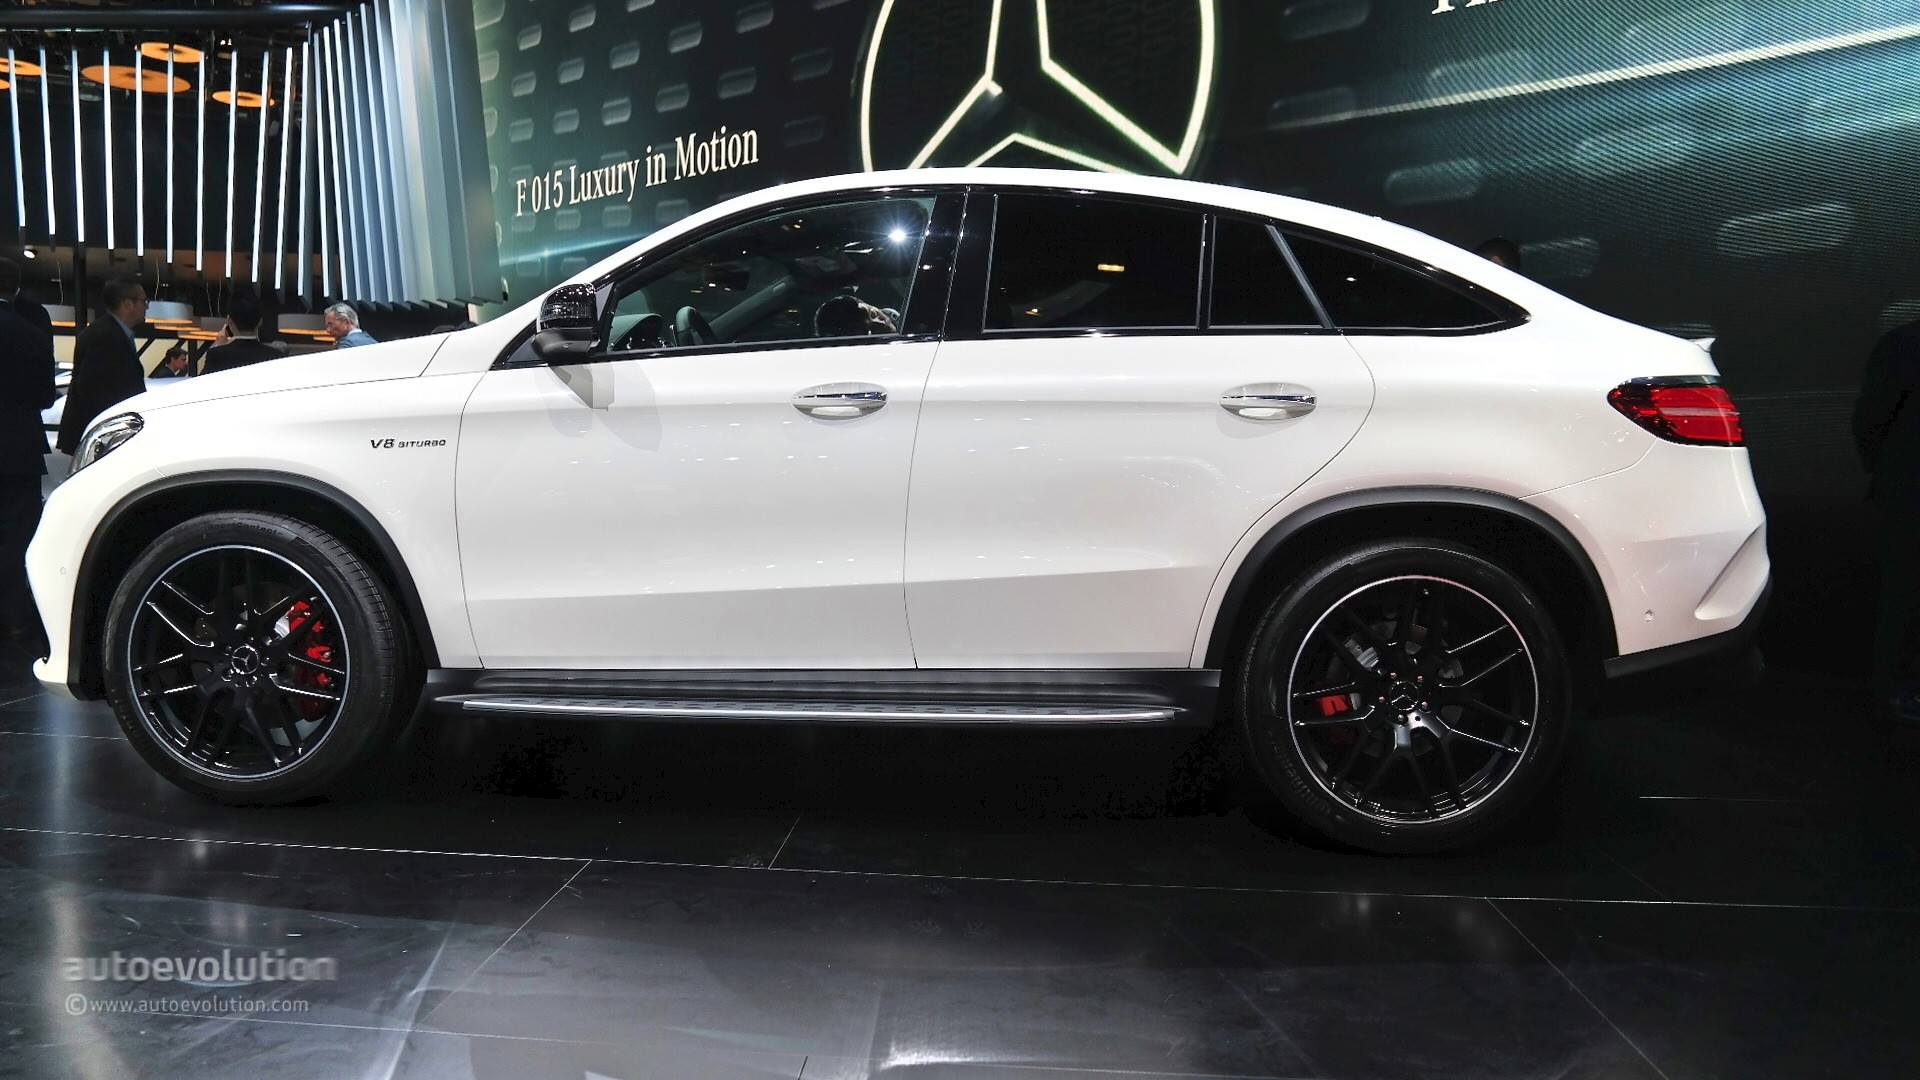 Mercedes AMG GLE63 S Coupe Is Too Much in the Flesh at the 2015